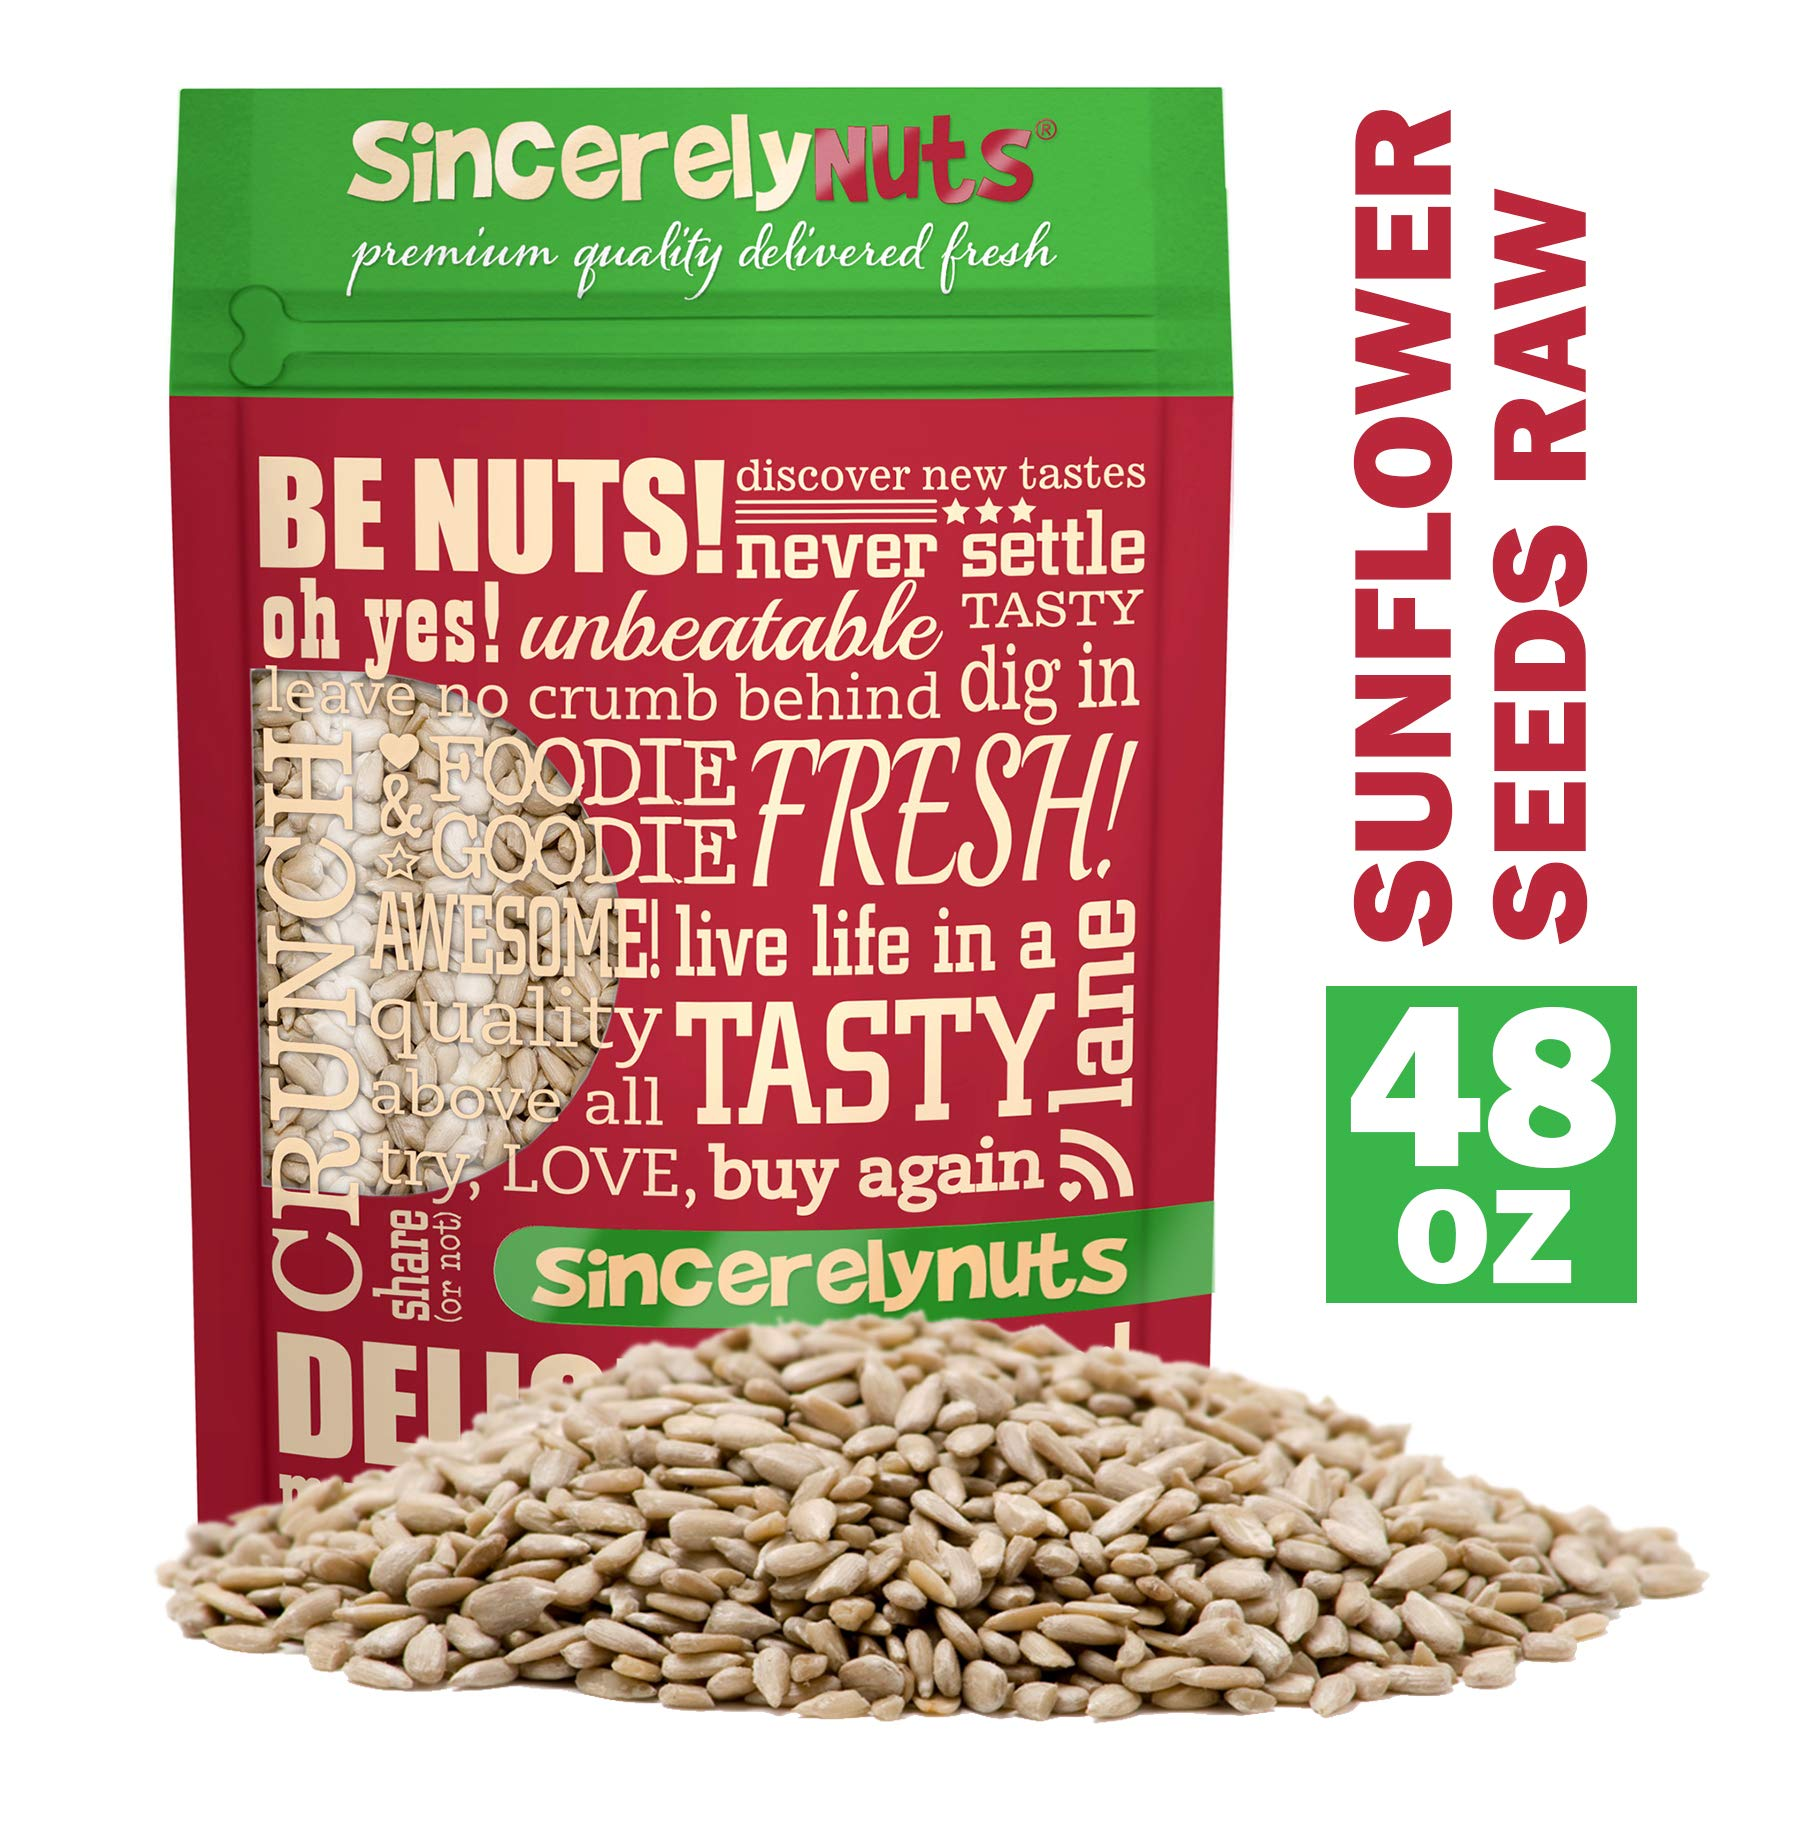 Sincerely Nuts Sunflower Seed Kernels Raw (No Shell) (3lb bag) | Delicious Antioxidant Rich Snack | Source of Protein, Fiber, Essential Vitamins & Minerals | Vegan and Gluten Free by Sincerely Nuts